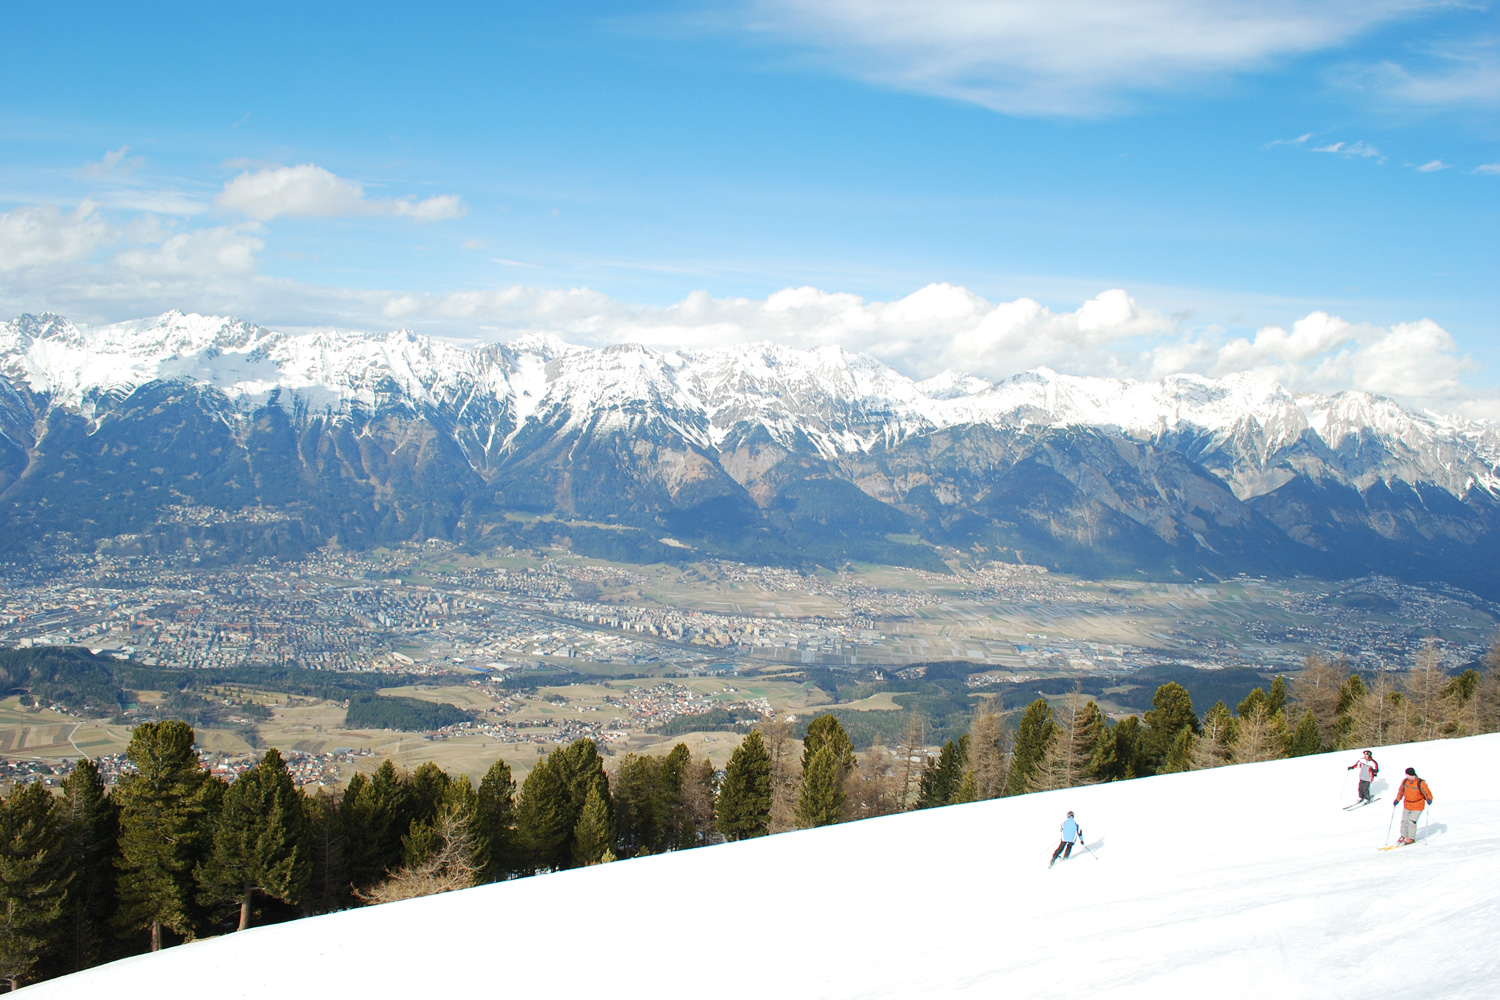 View from Patscherkofel over Innsbruck, Austria